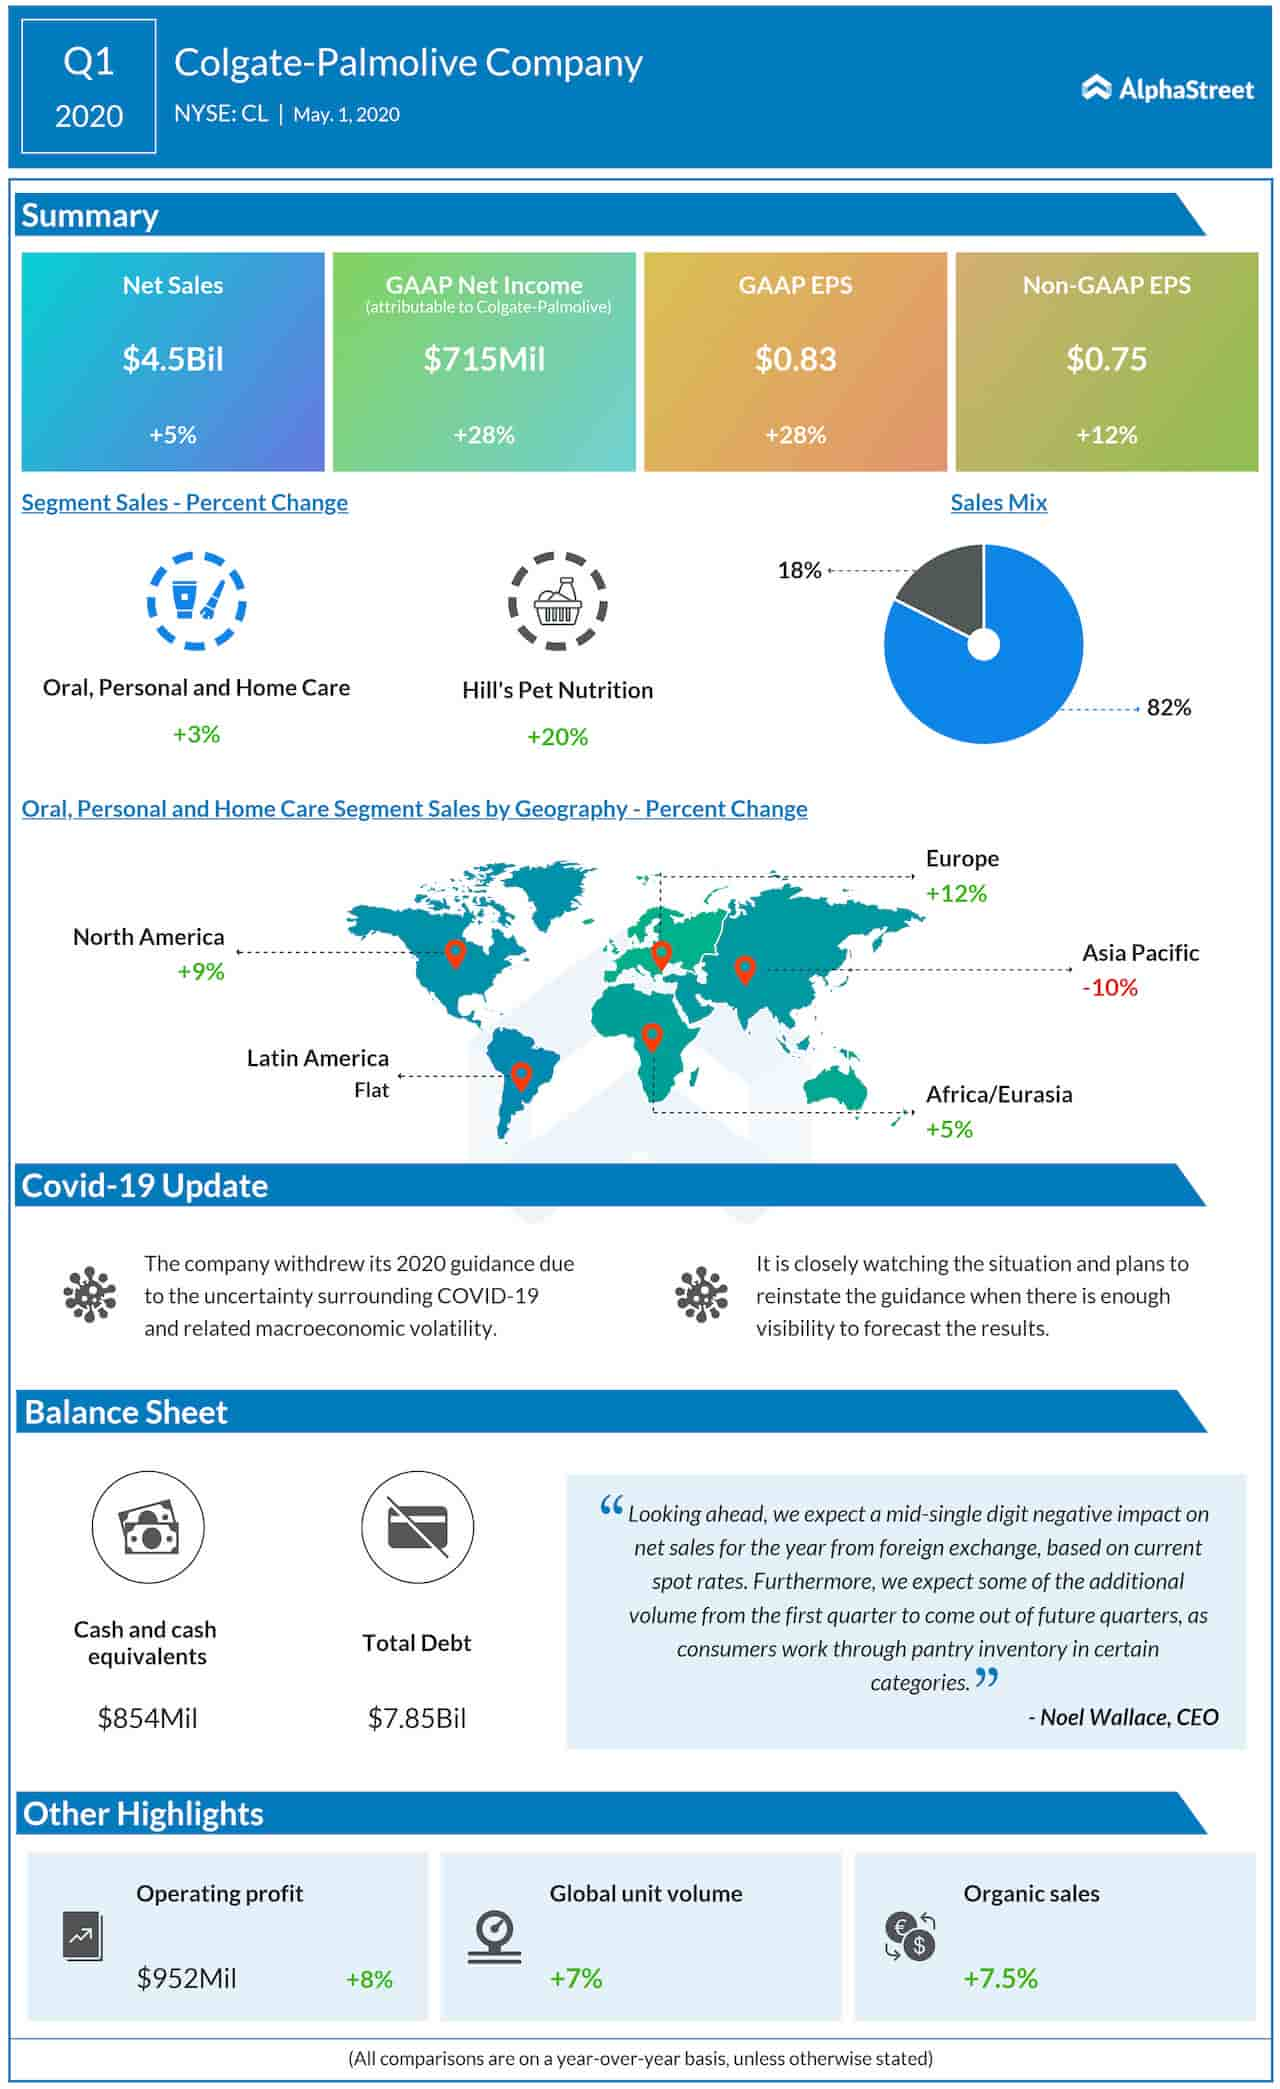 Colgate-Palmolive Company Q1 2020 Earnings Infographic